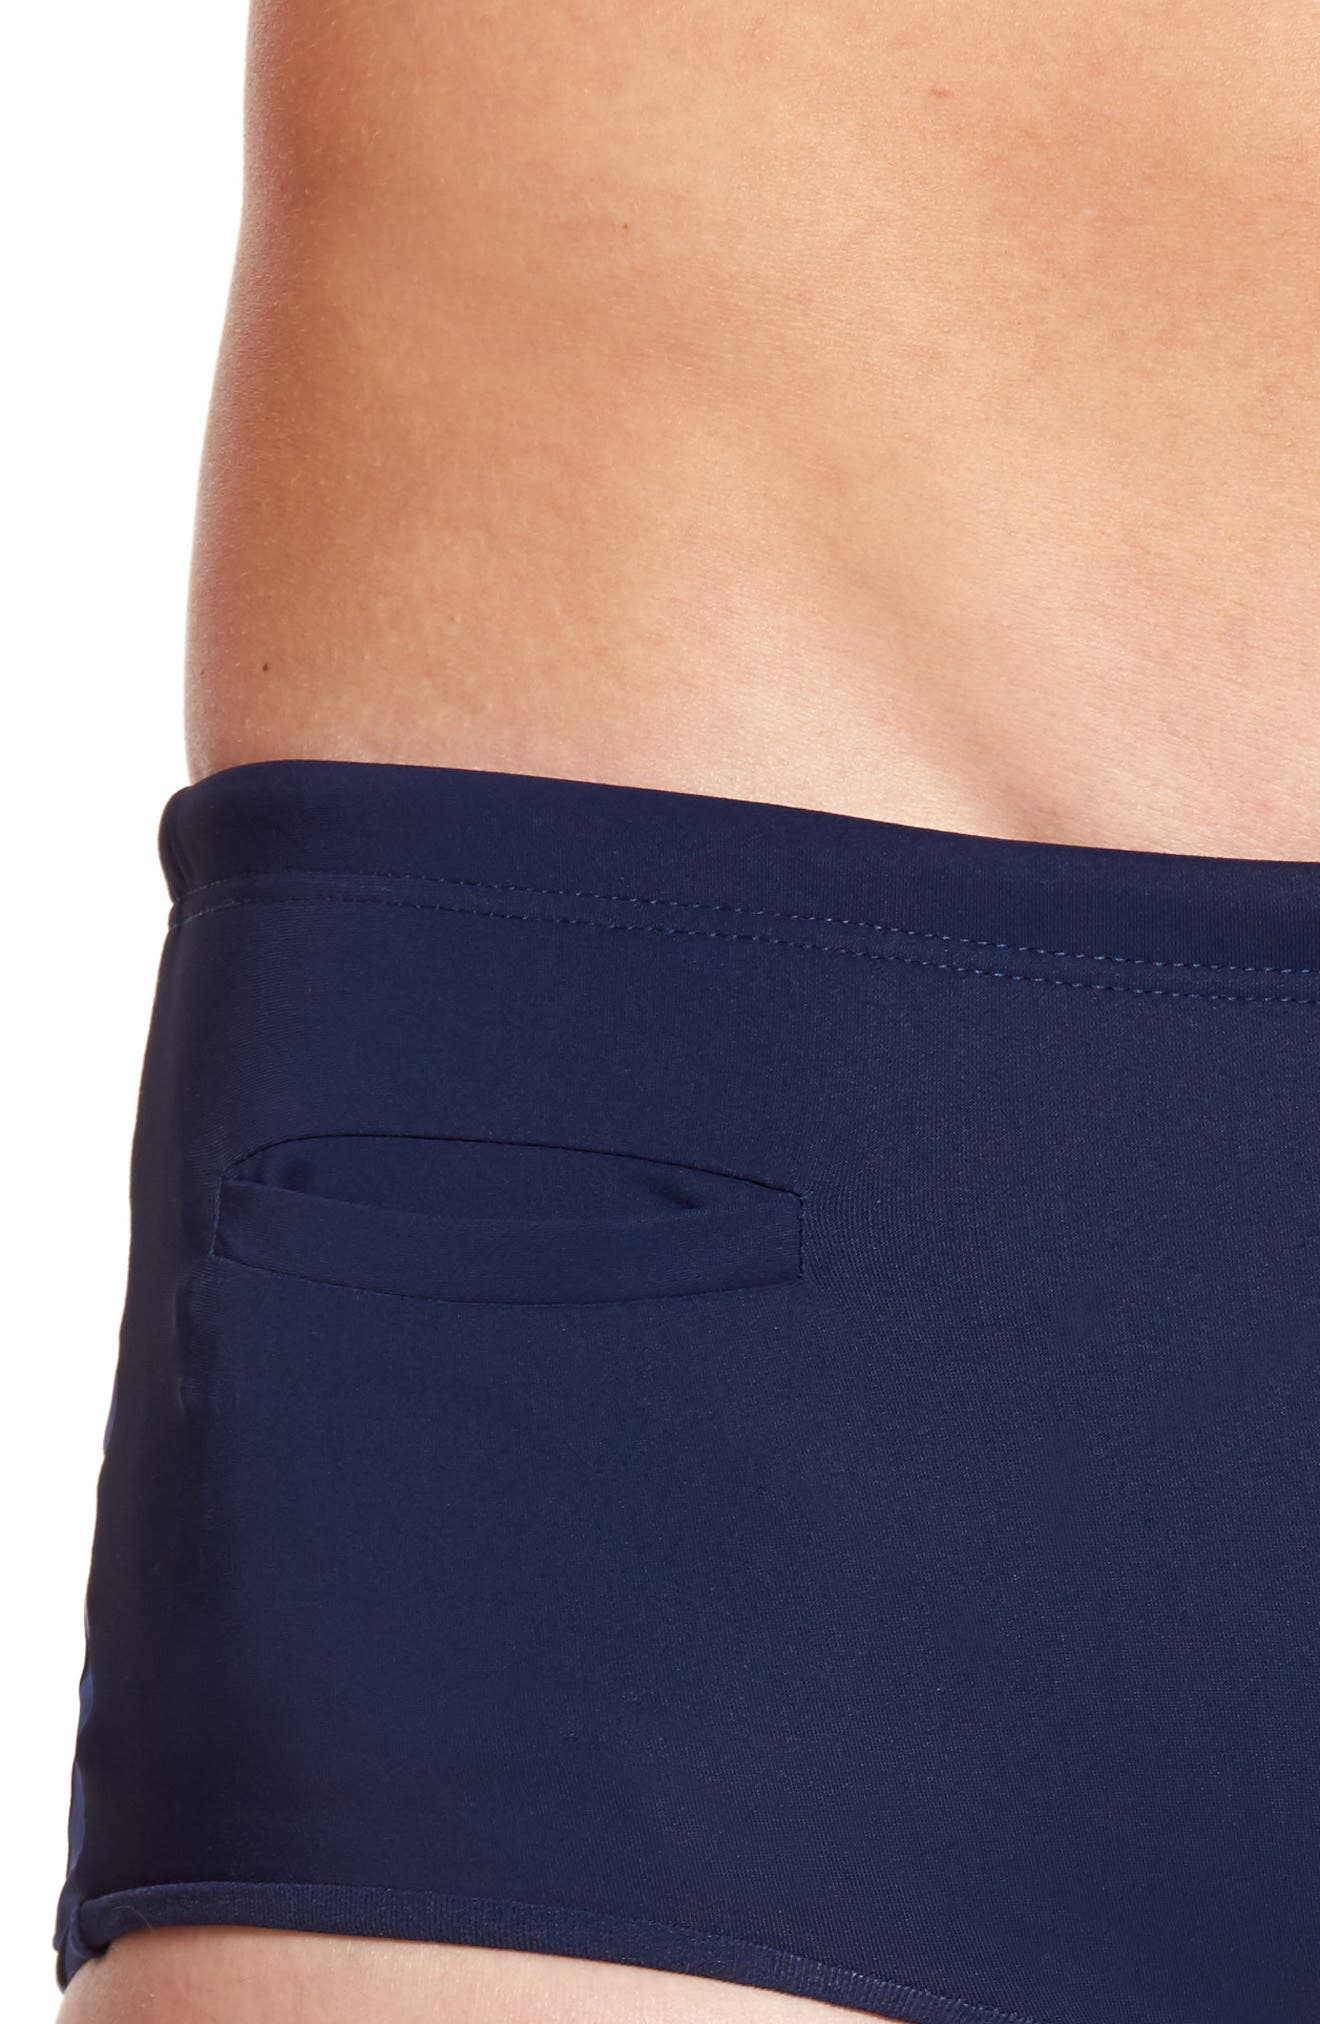 Tuxedo Swim Briefs,                             Alternate thumbnail 4, color,                             Navy